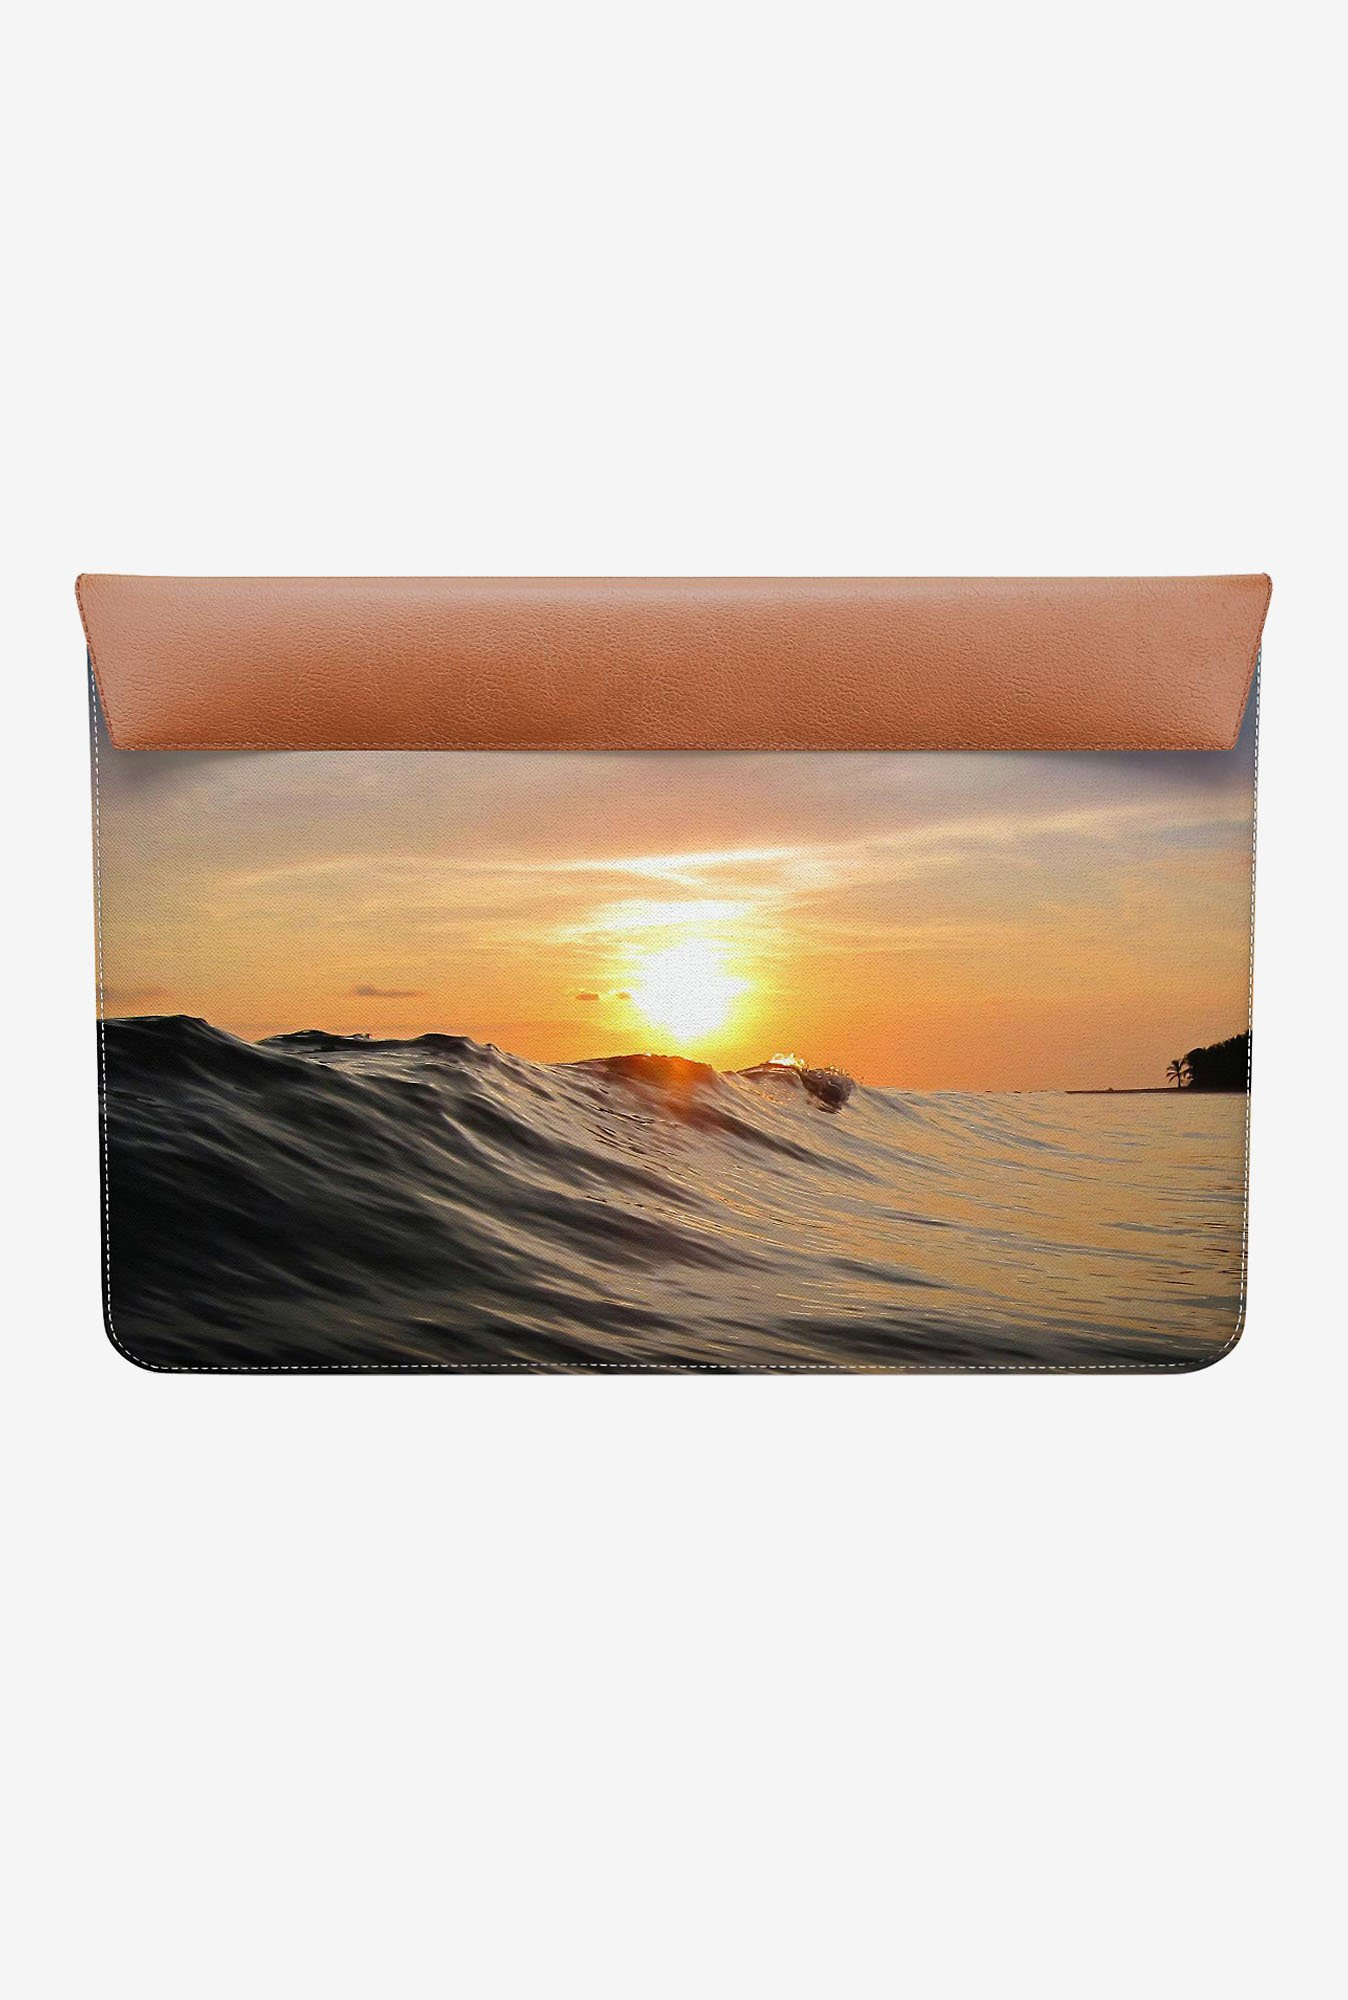 DailyObjects Sunset MacBook 12 Envelope Sleeve